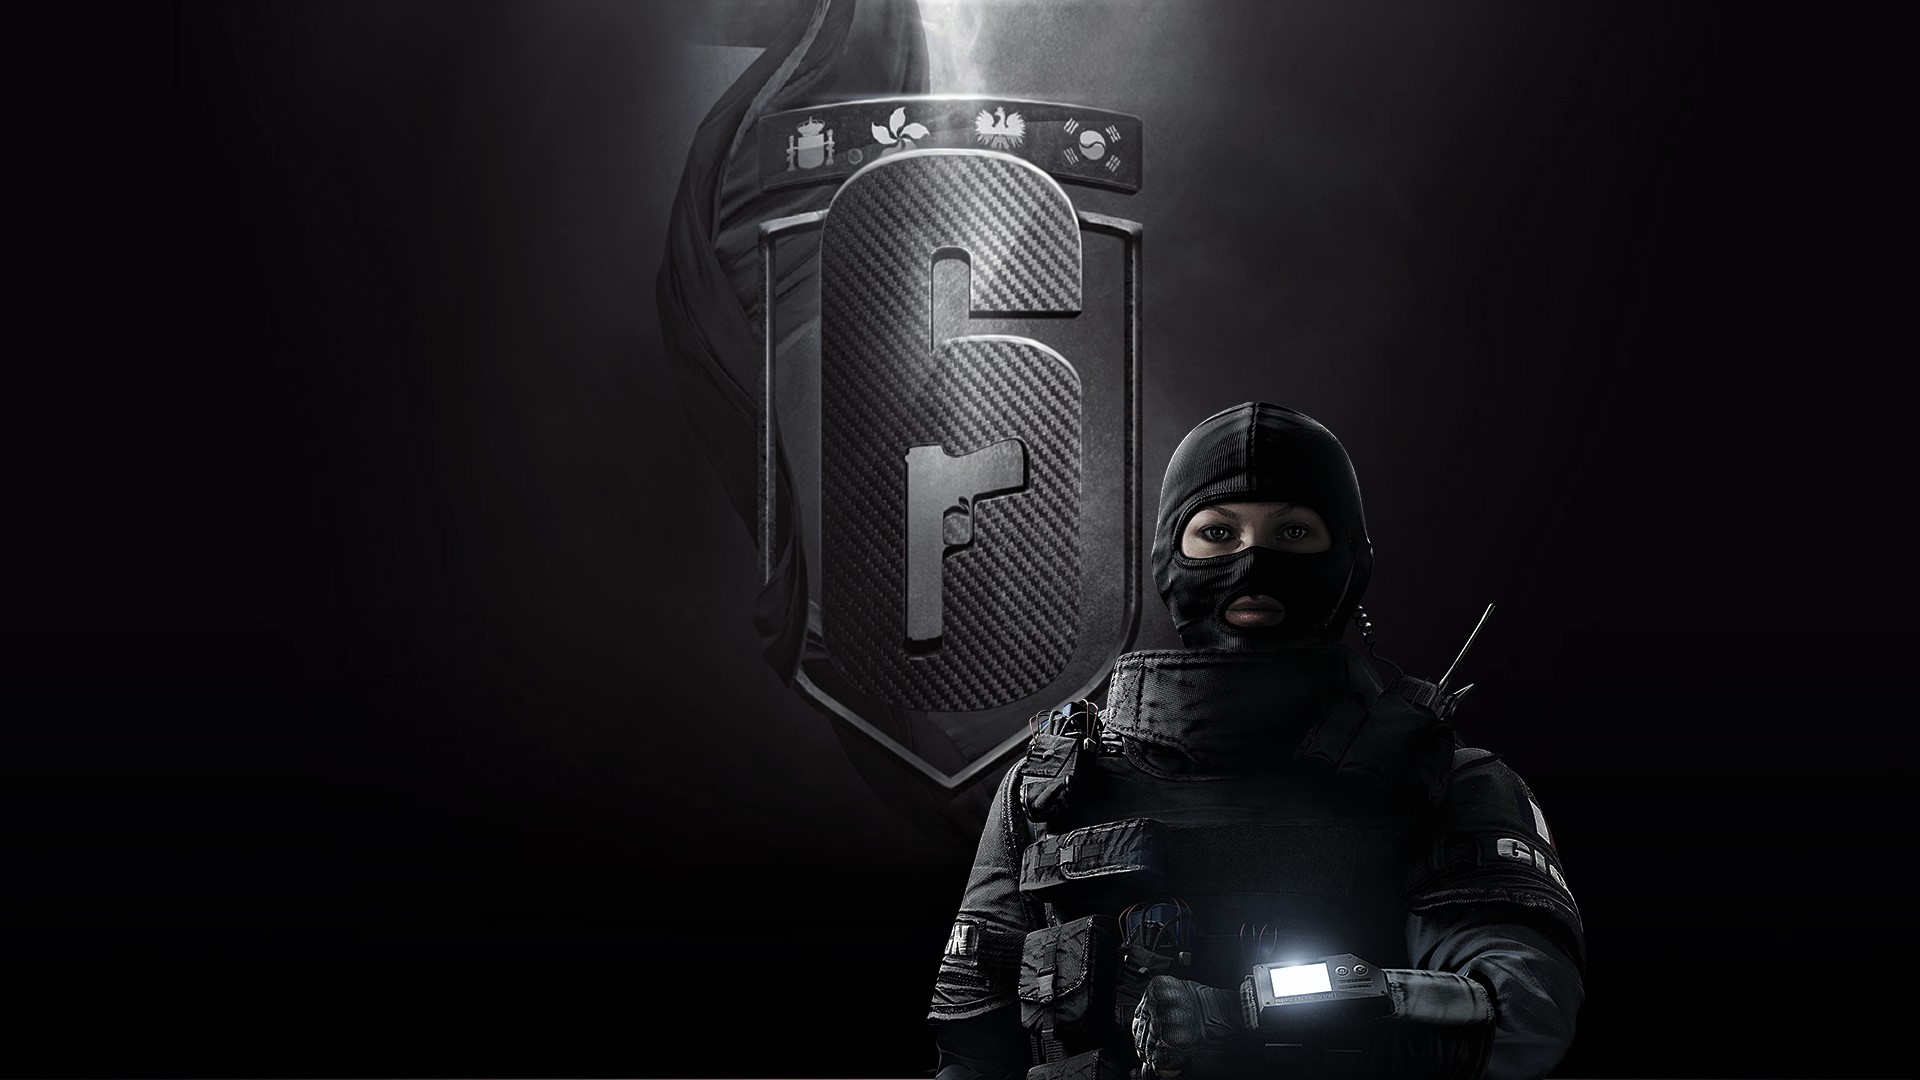 Twitch Rainbow Six Siege By Bivalus On Deviantart